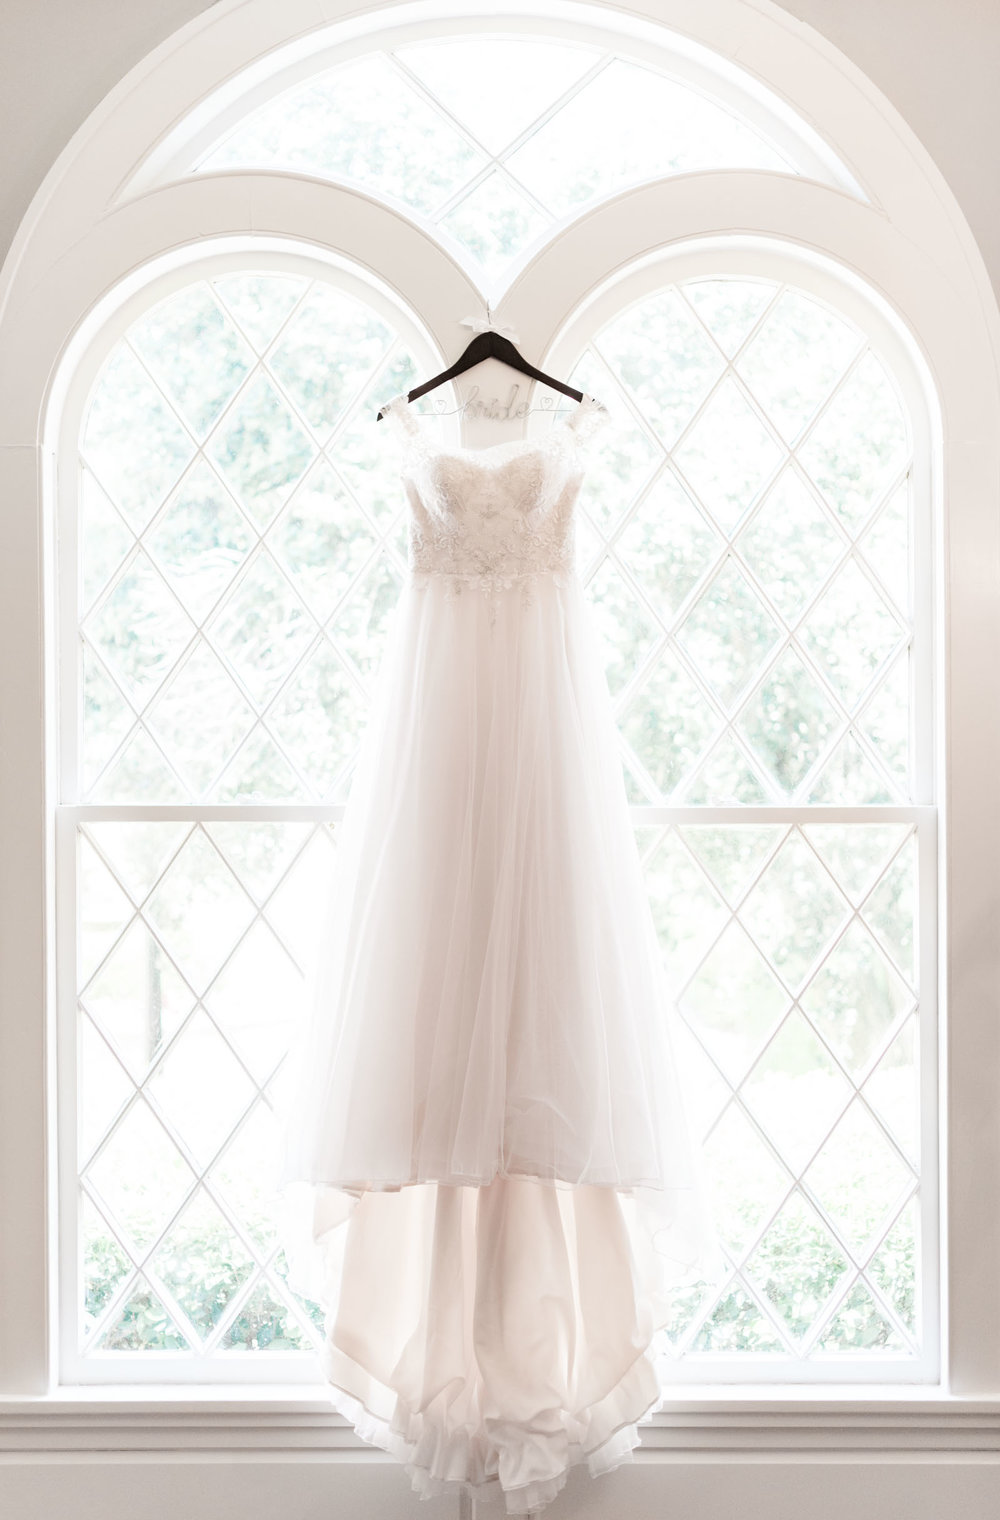 Markie_Walden_Bridal-Details-Why-They're-Important-9.jpg